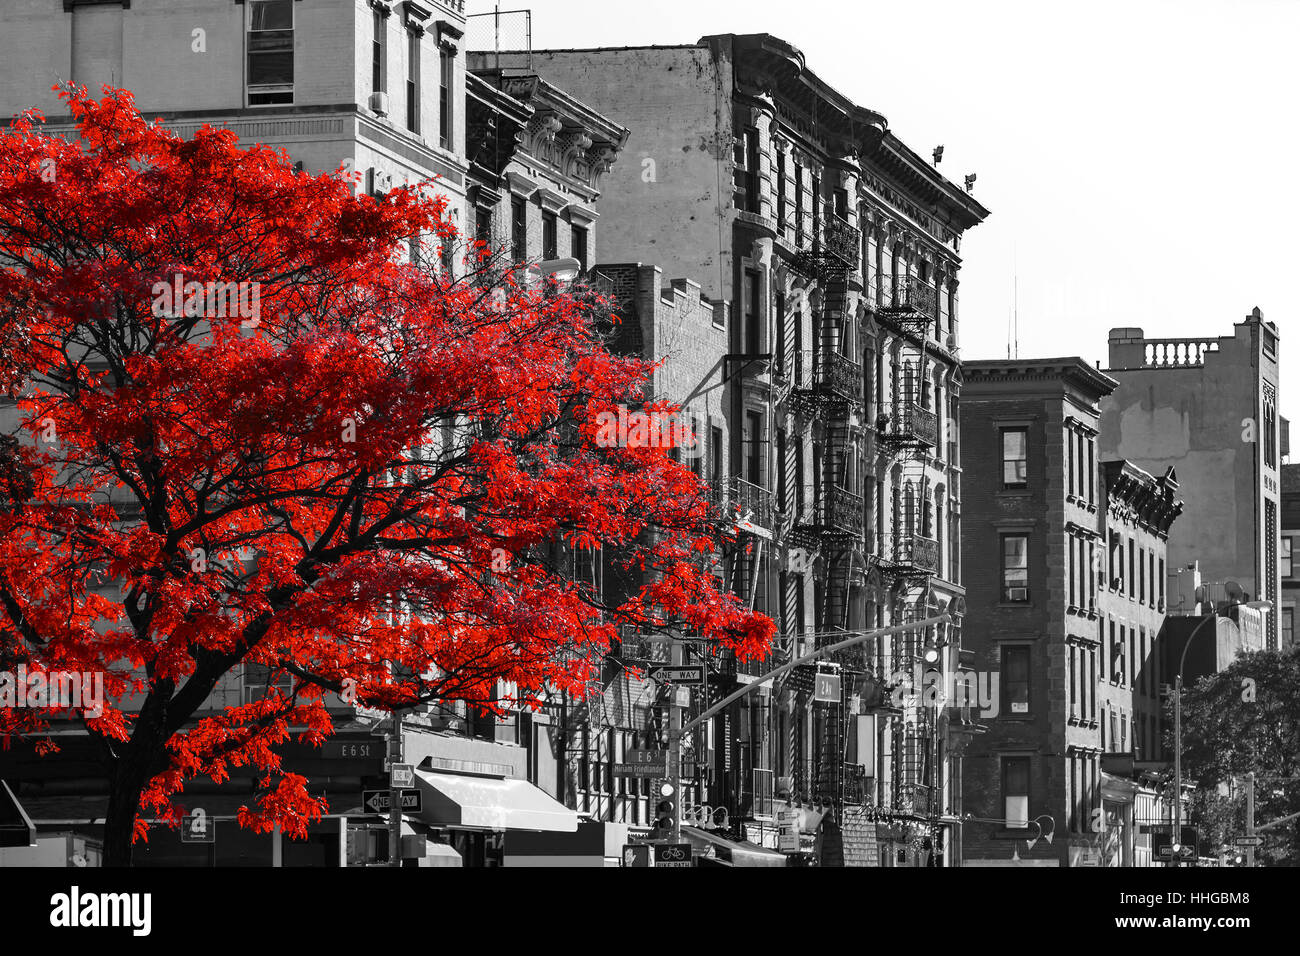 Red fall tree in black and white nyc street scene on 2nd avenue in the east village of manhattan new york city